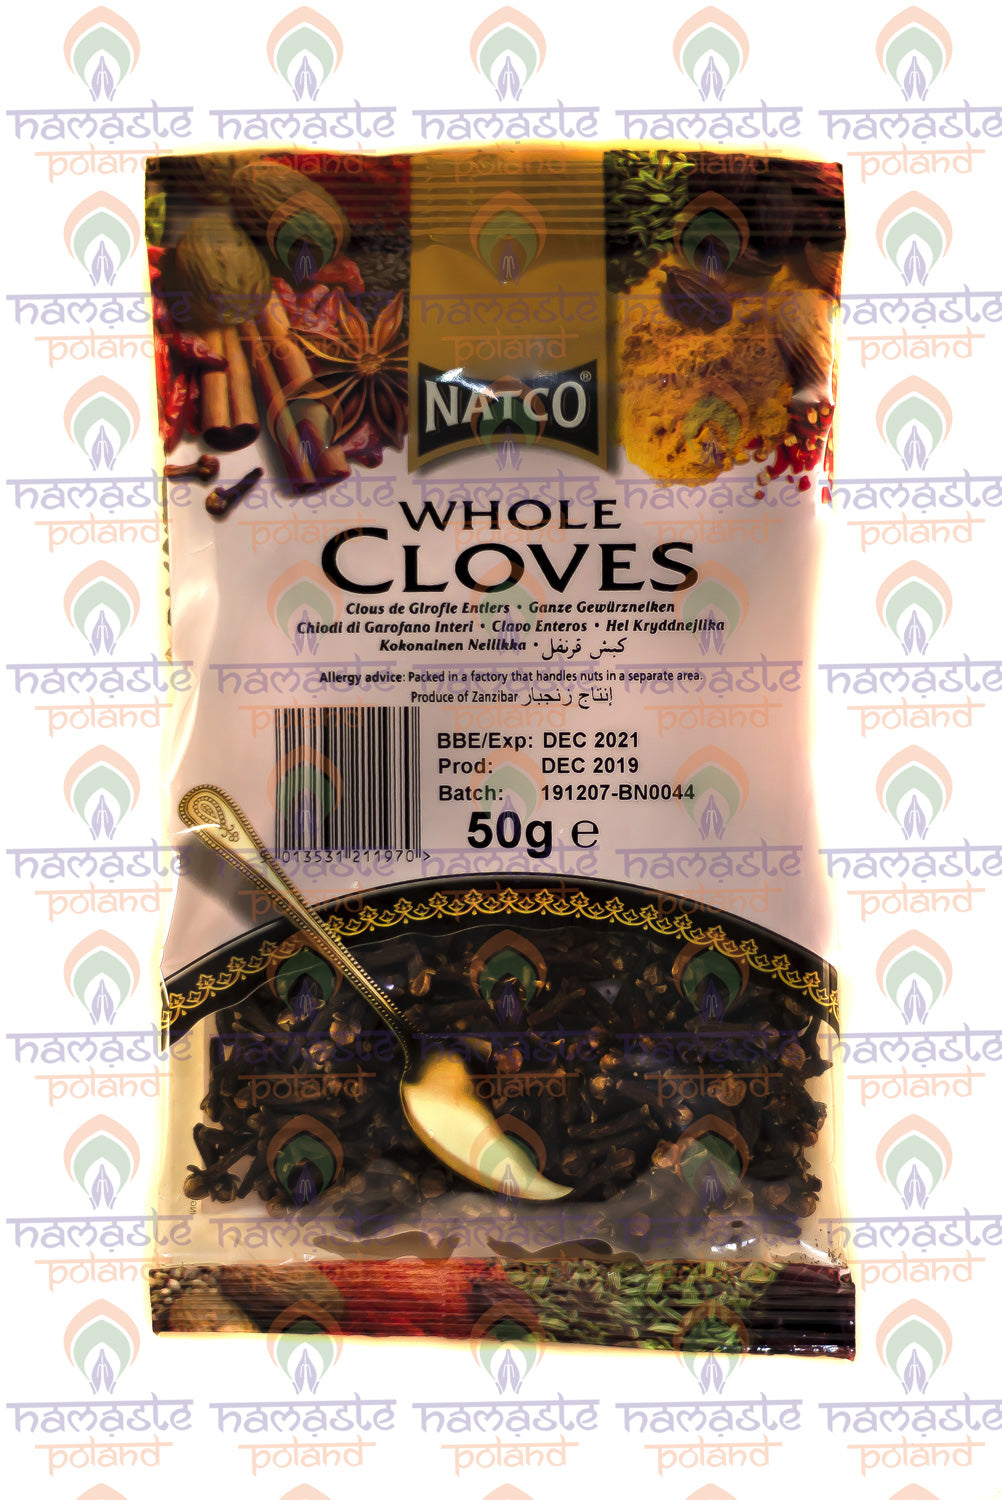 Natco Whole Cloves 50g